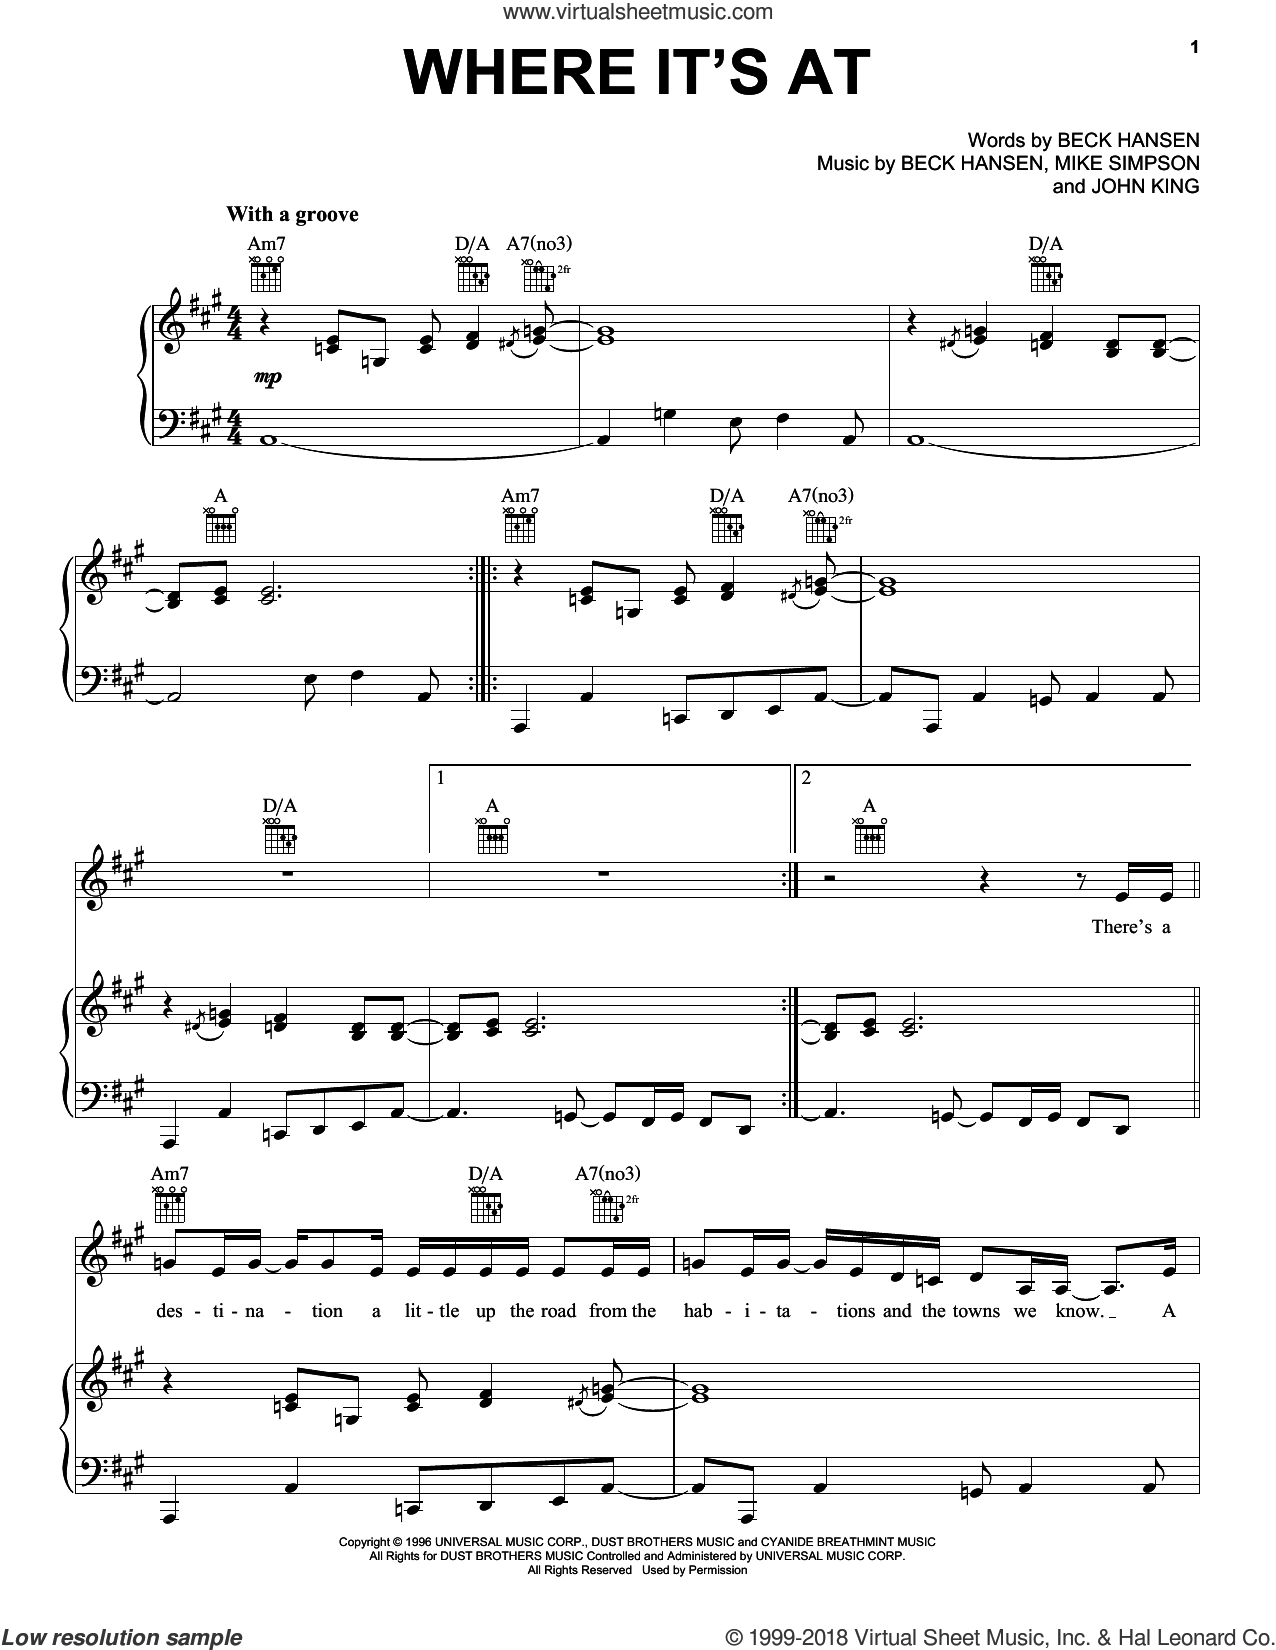 Where It's At sheet music for voice, piano or guitar by Beck Hansen, John King and Mike Simpson, intermediate skill level